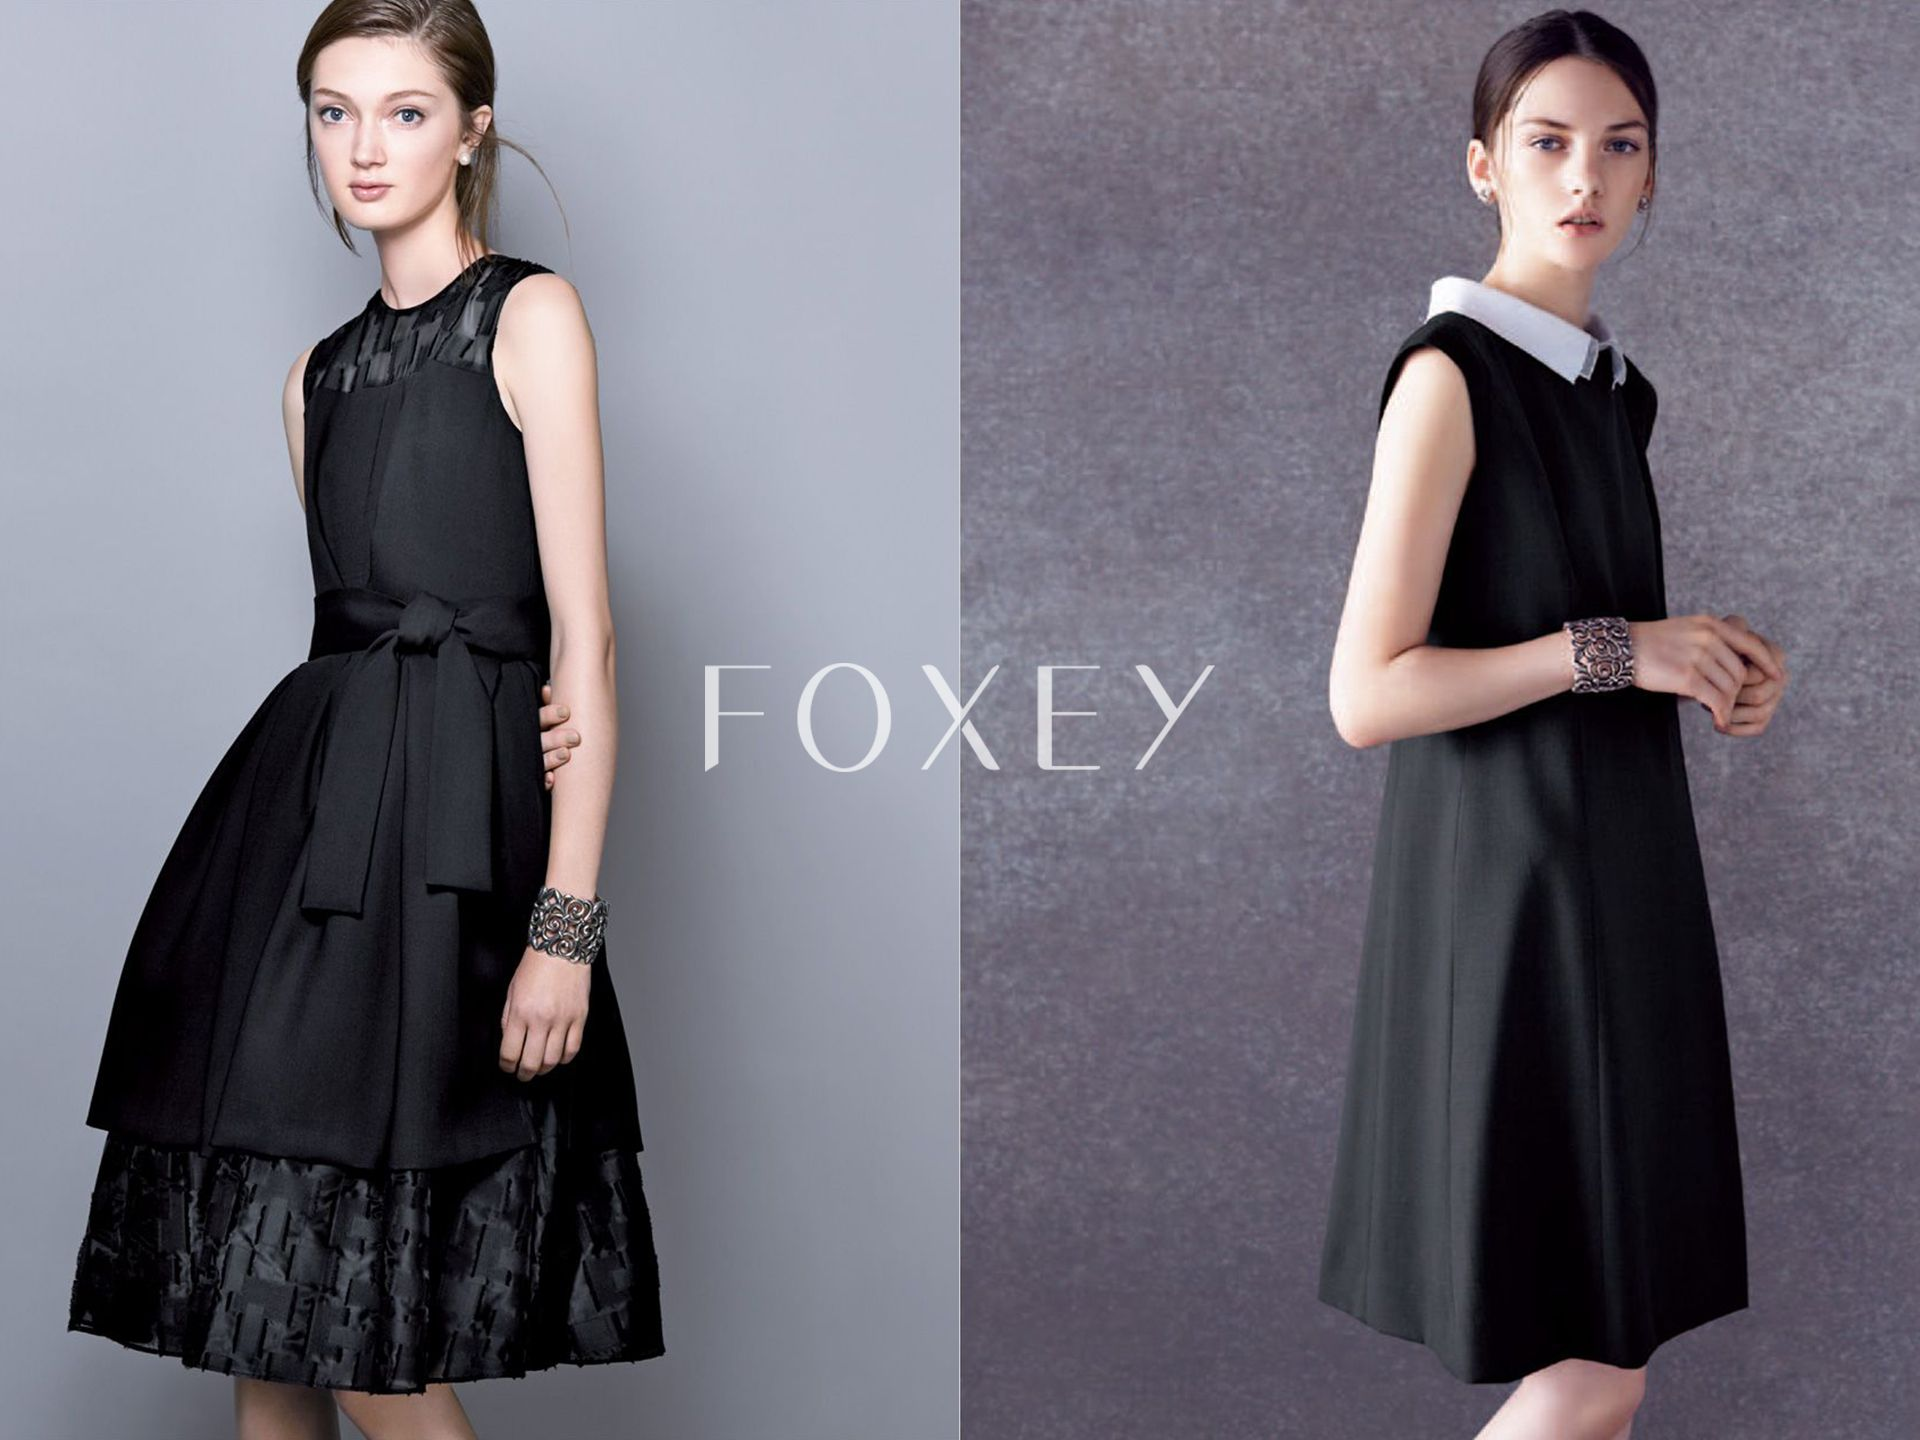 FOXEY(フォクシー)